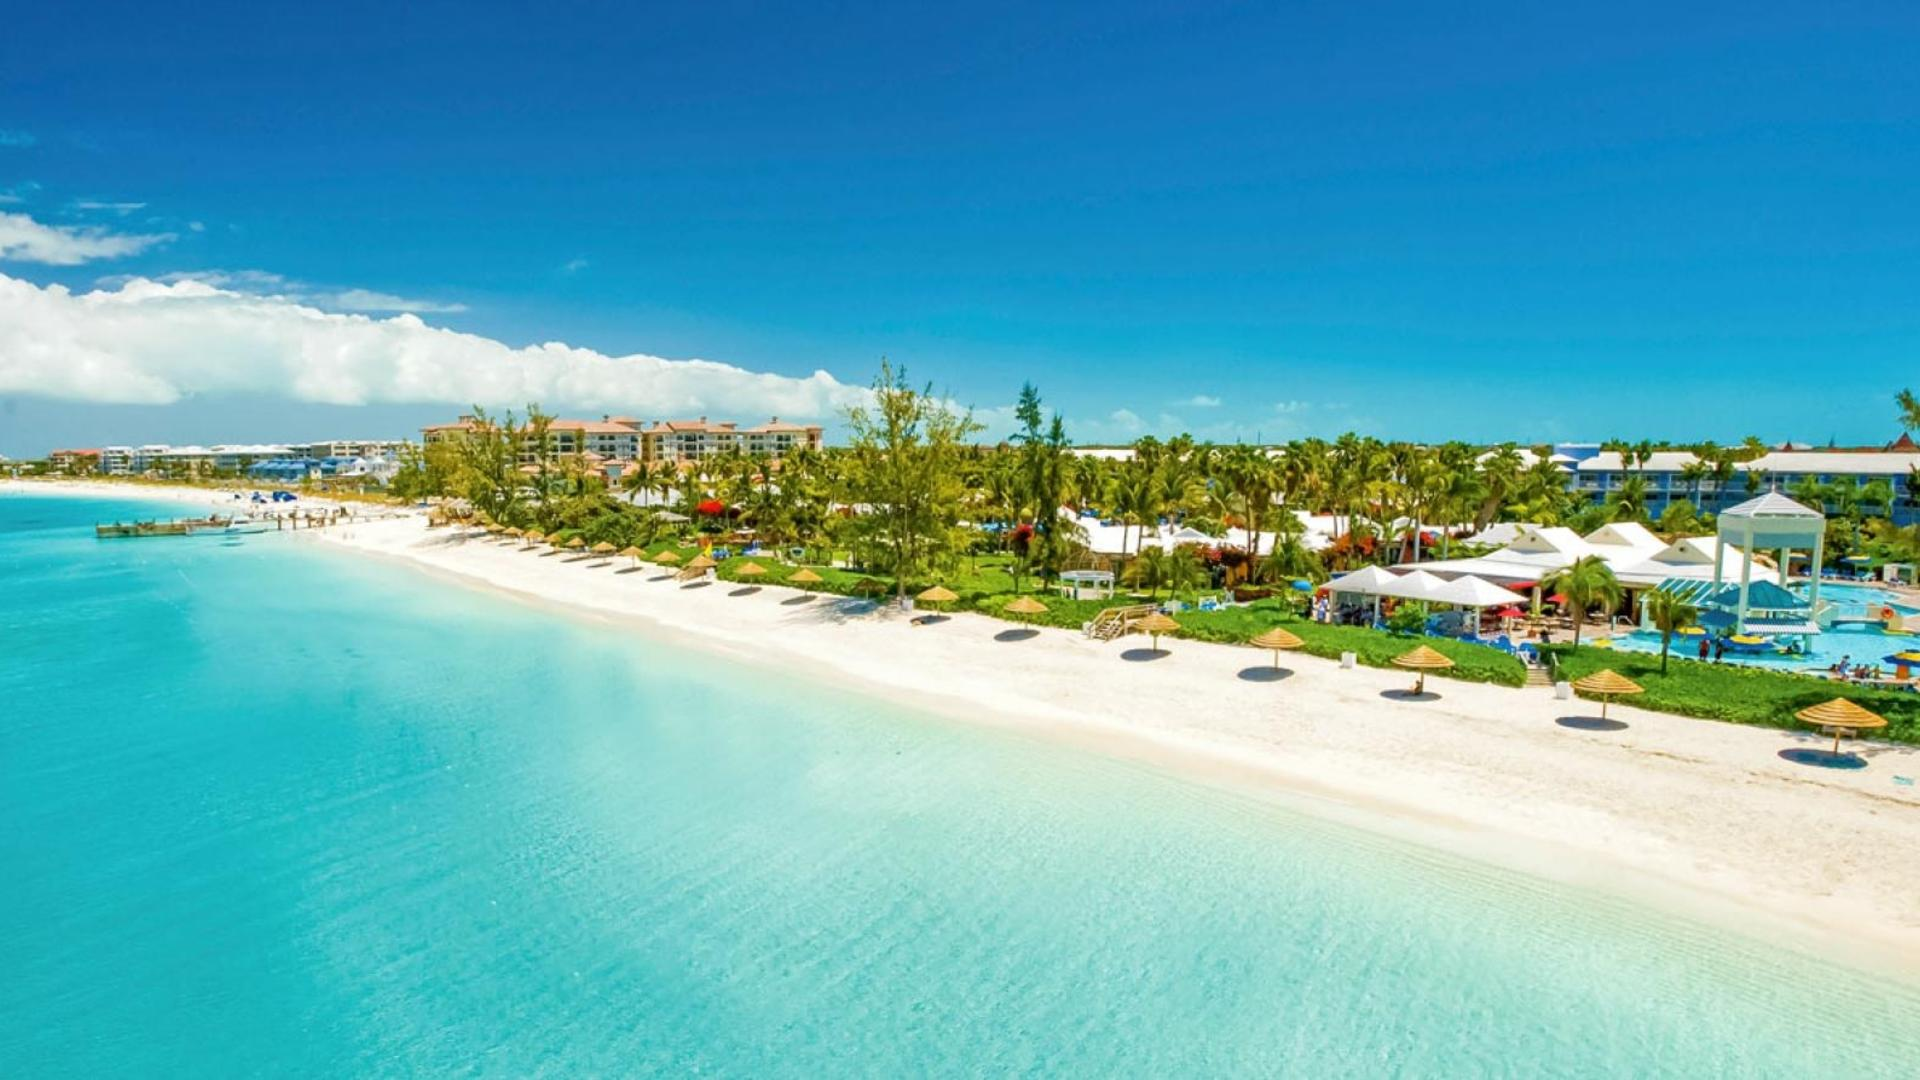 An all-inclusive family resort in Turks & Caicos BTC